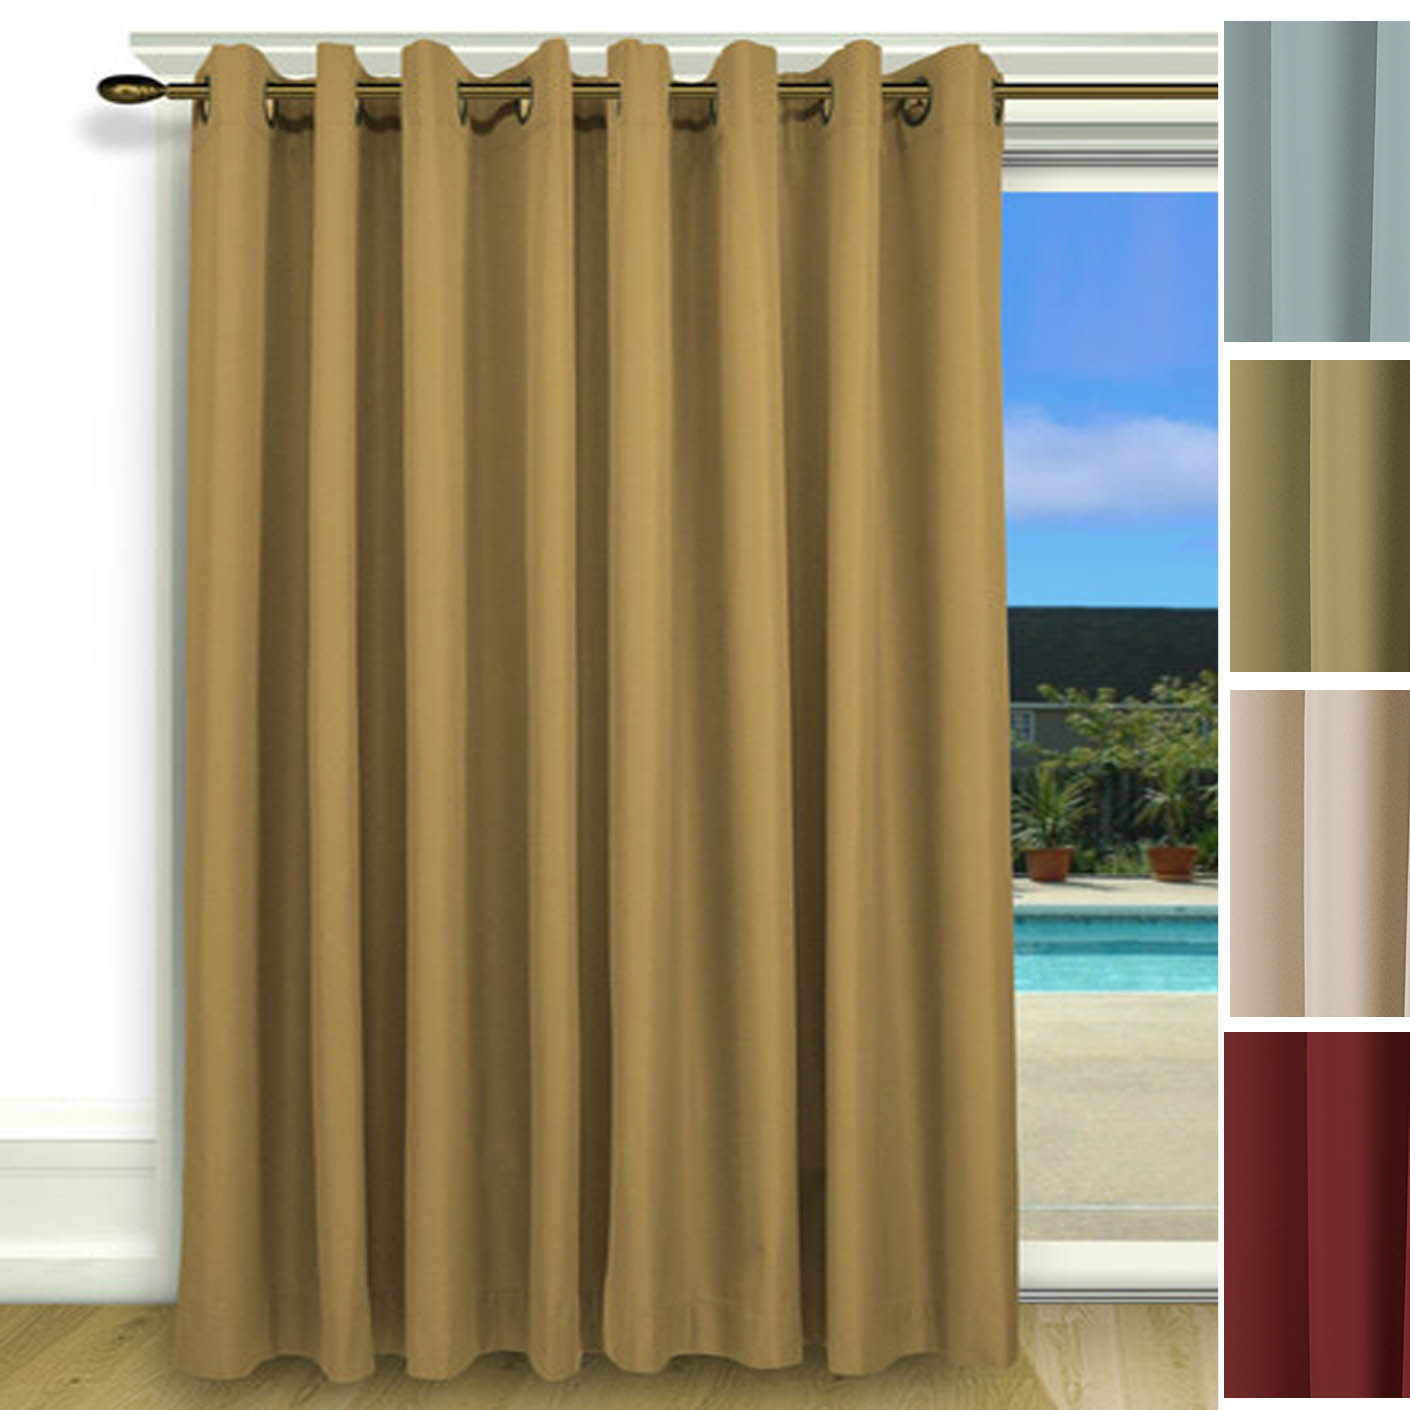 Curtain Insulation Fabric Elegance Insulated Thermal Grommet Curtain Patio Panel